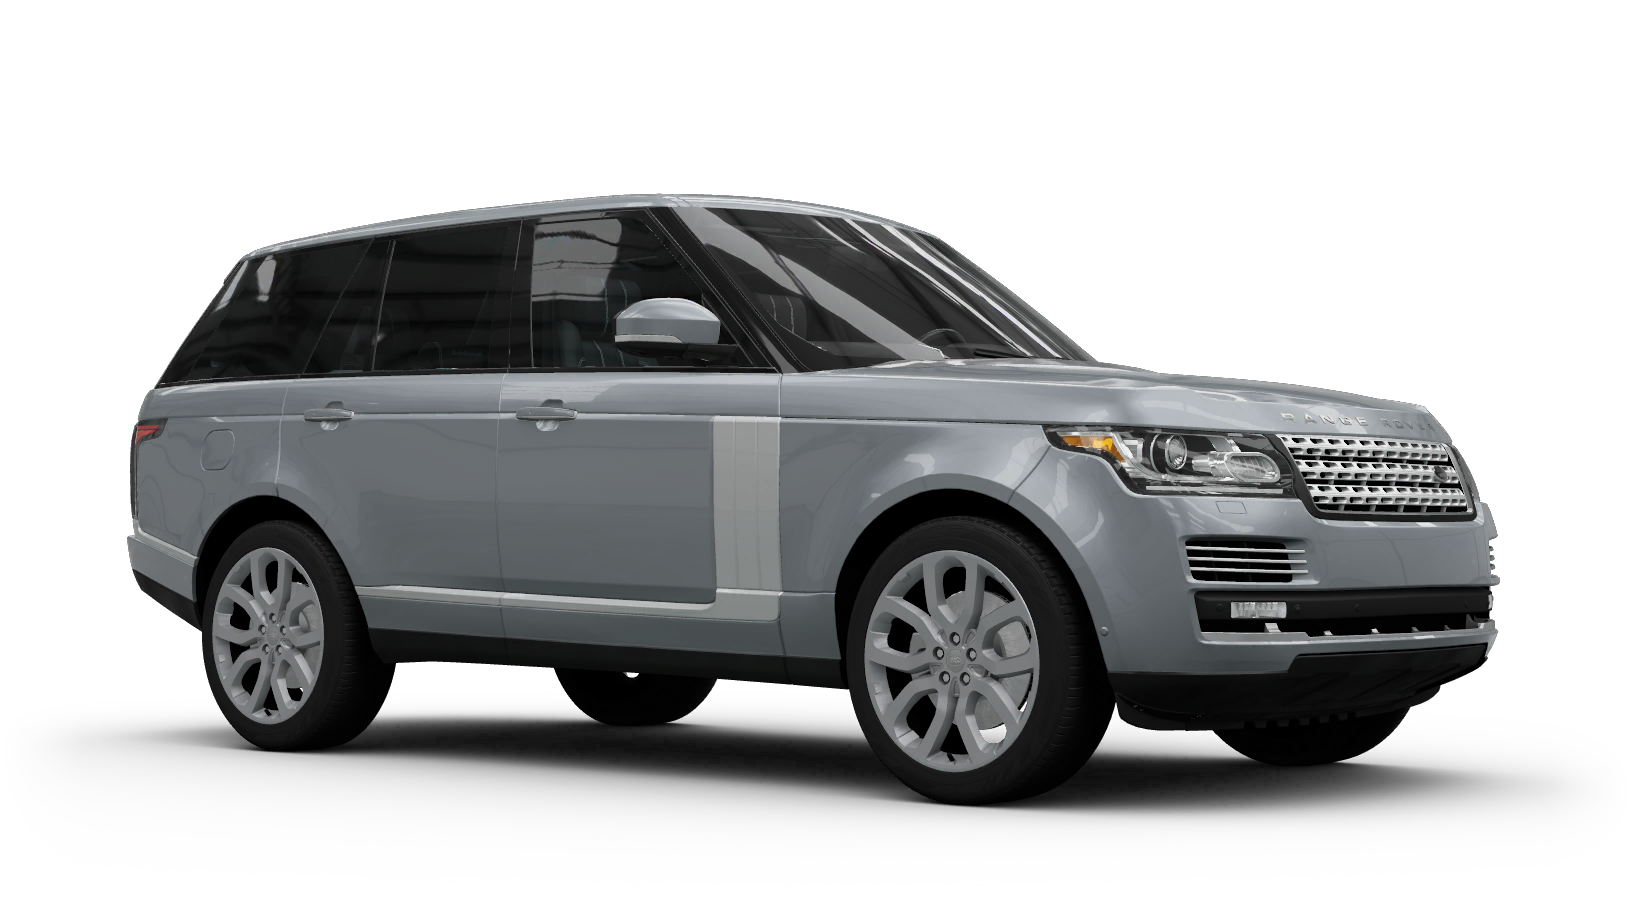 Land Rover Range Rover Supercharged (2014)